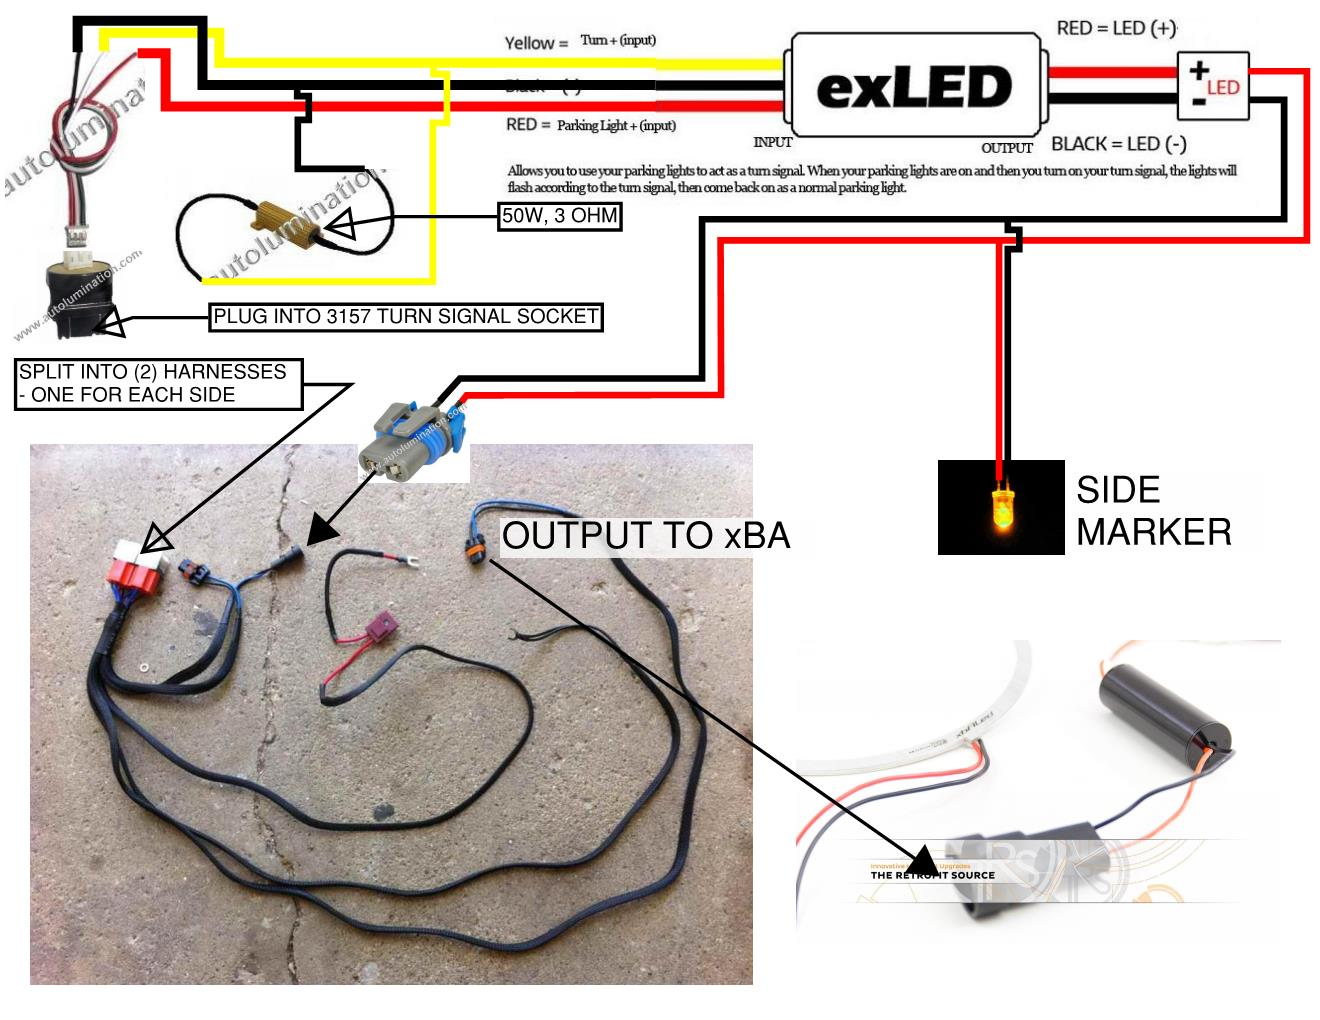 hight resolution of 12v led turn signal wiring wiring diagram used led turn signal causes all lights to flash